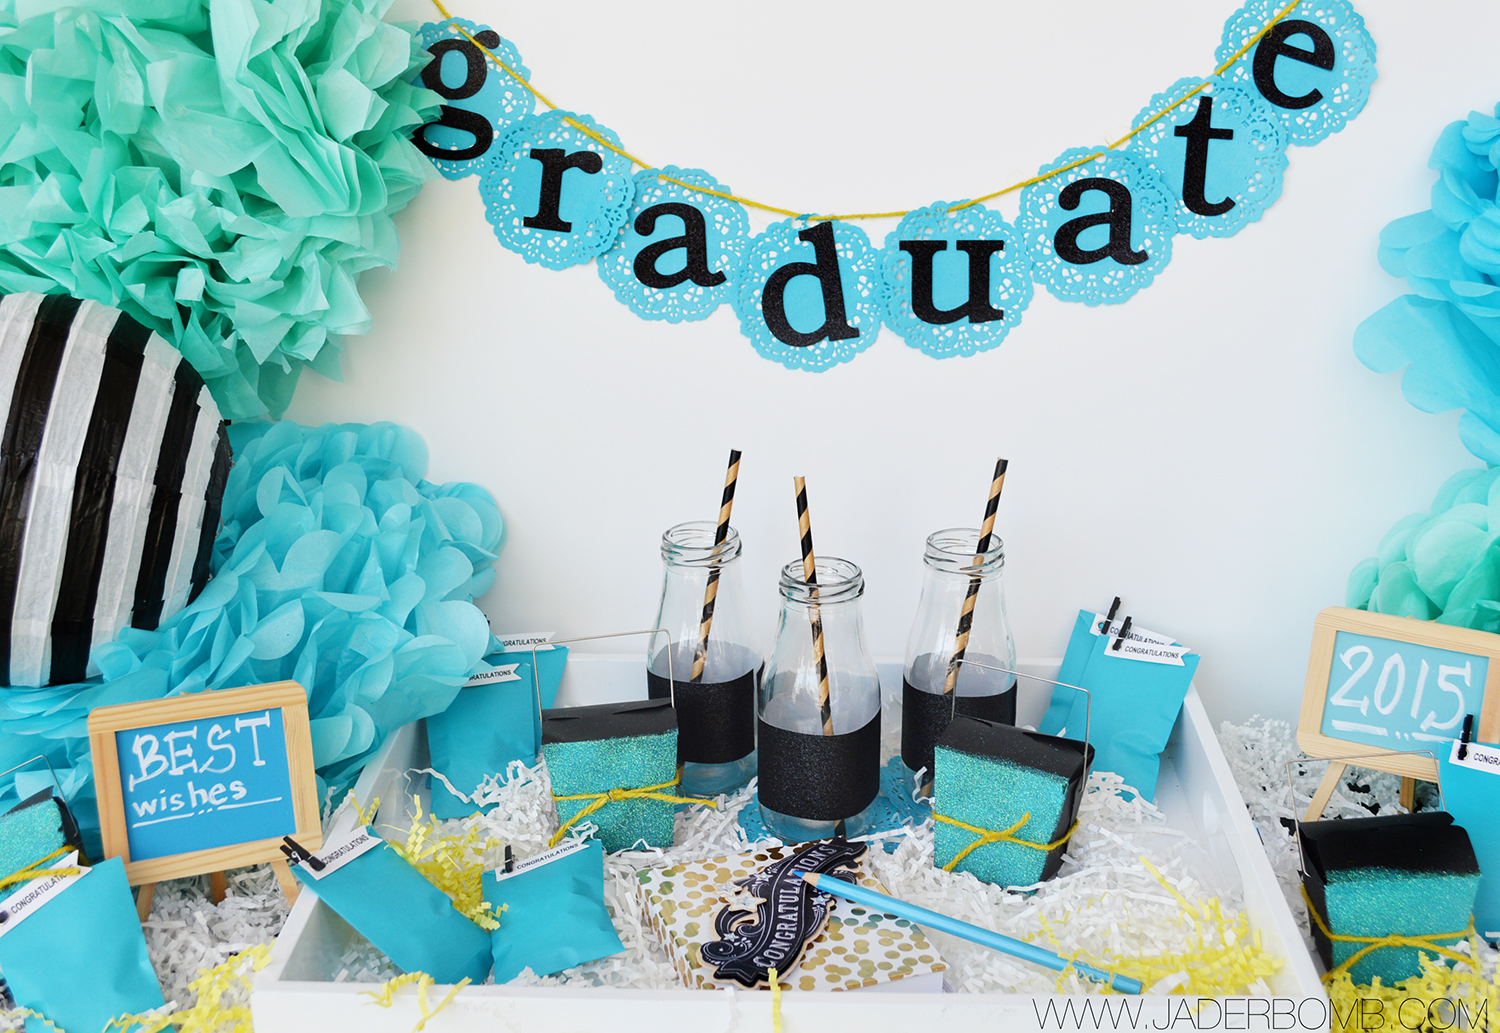 Graduation party graduation party ideas graduation for Graduation decorations